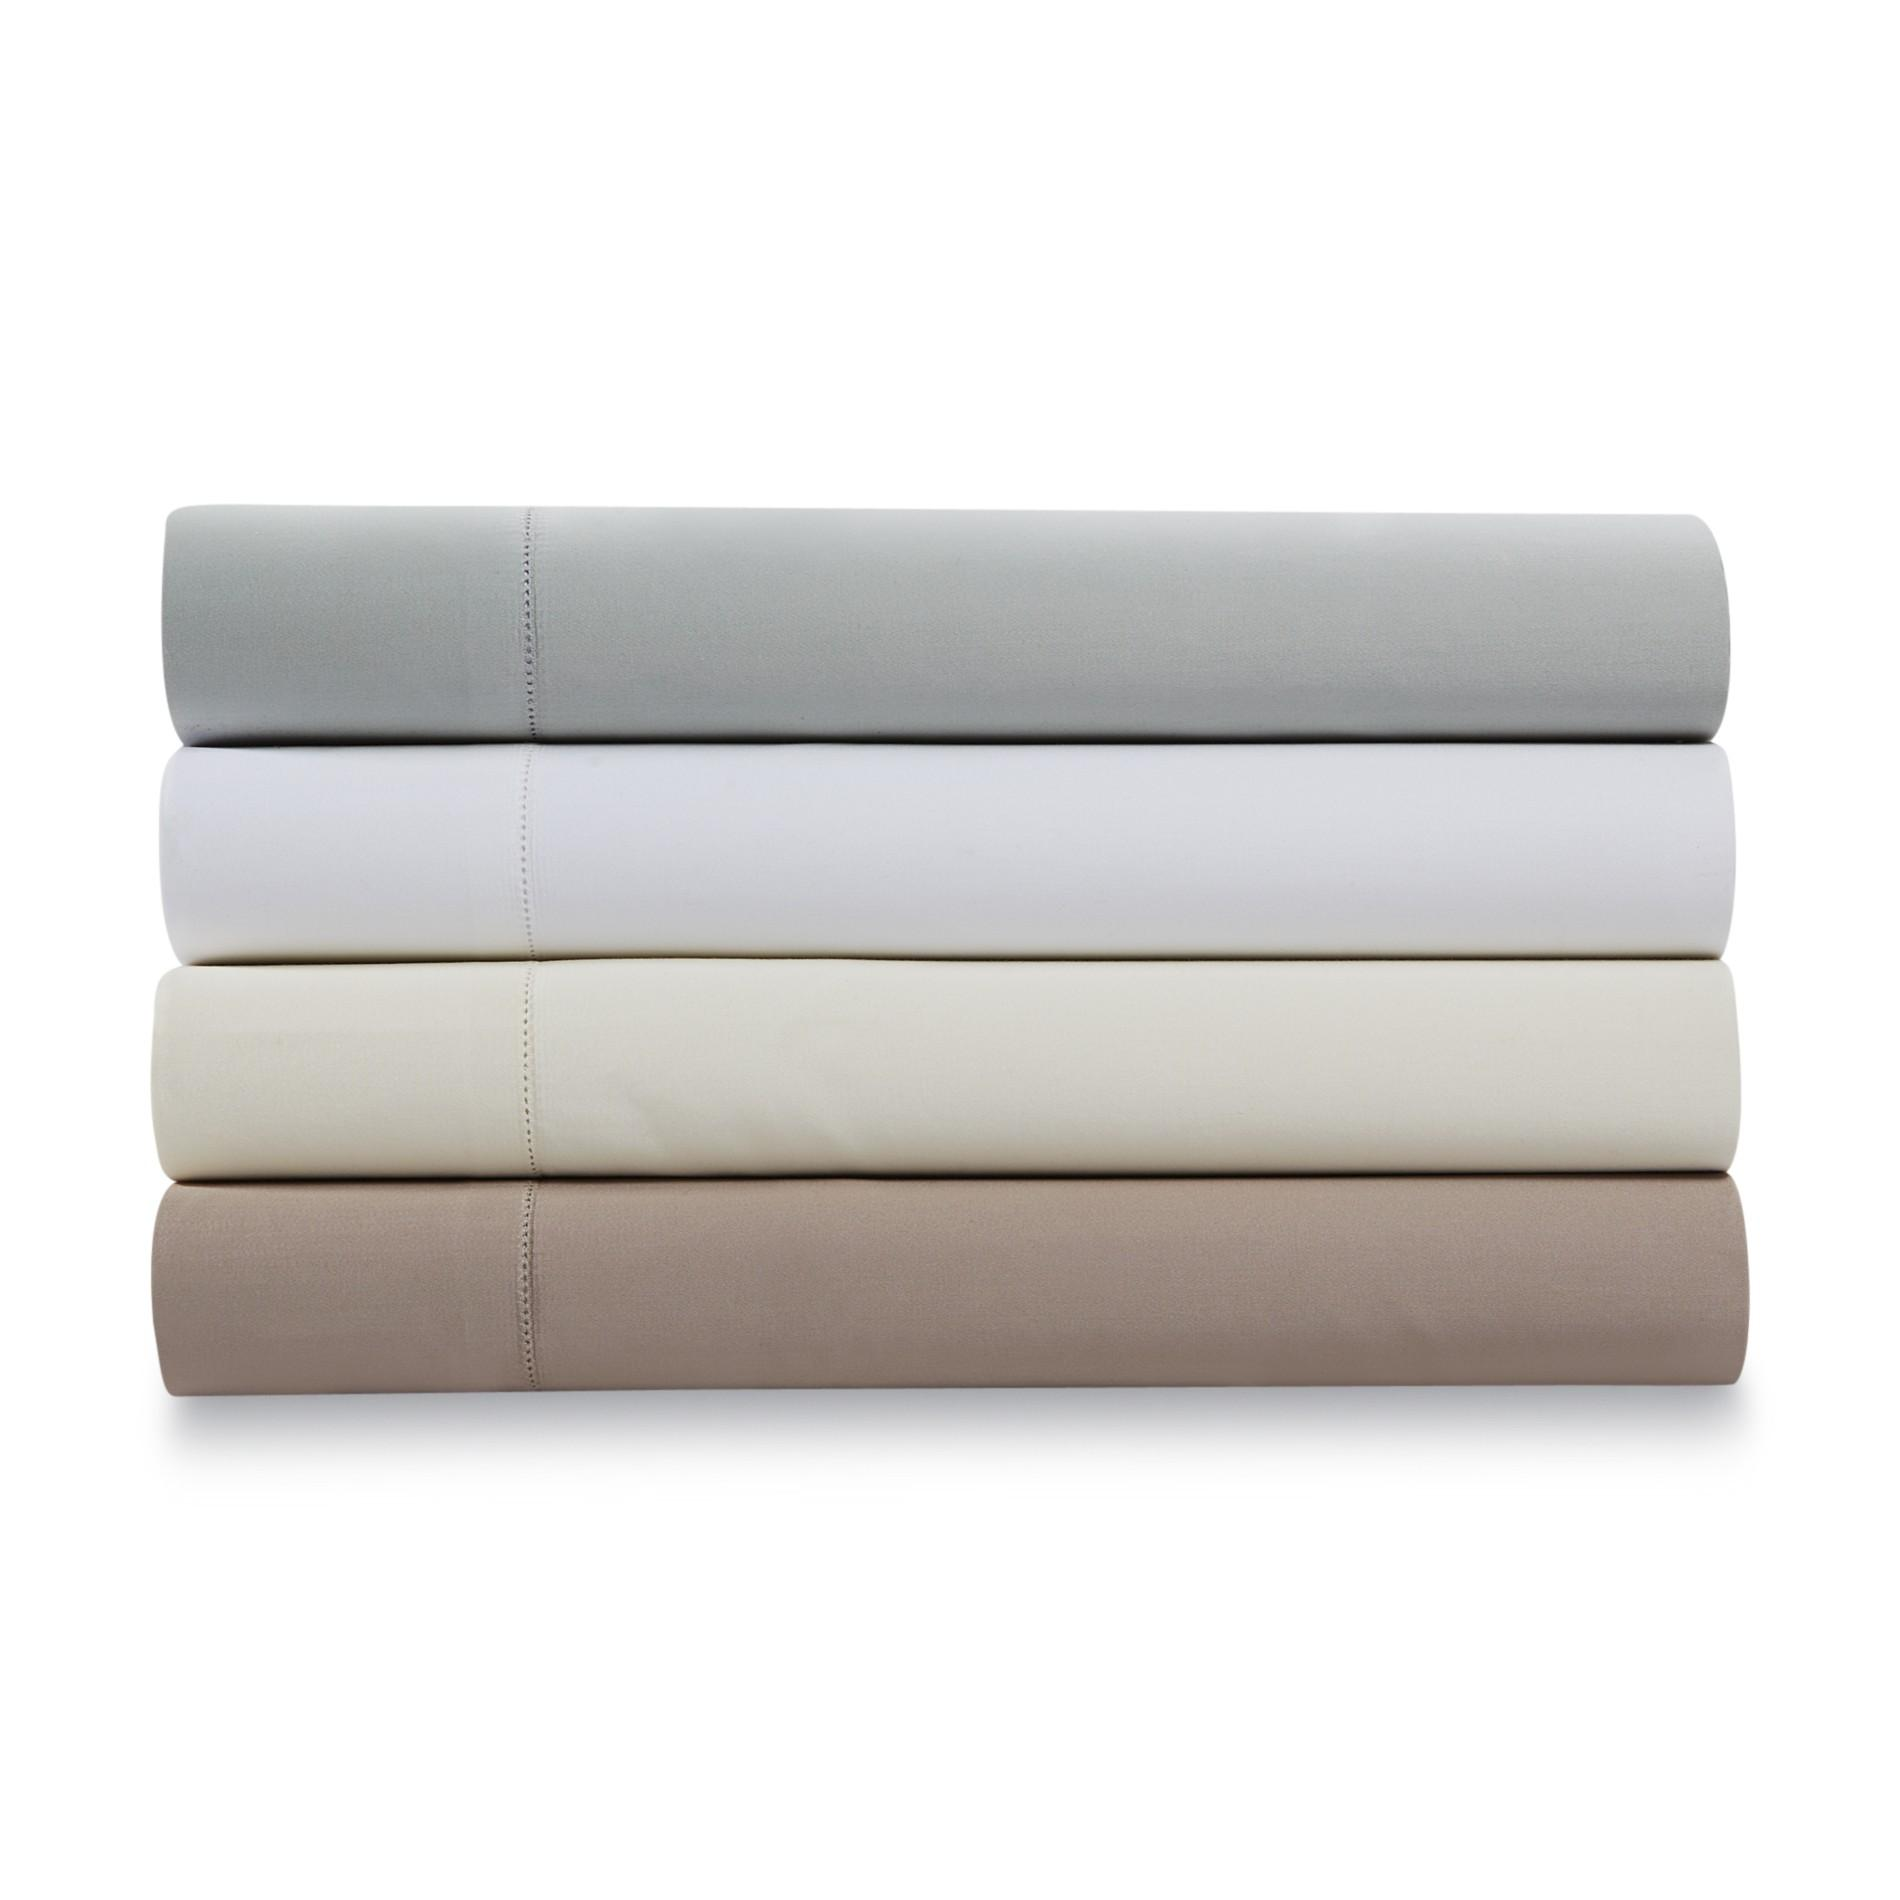 Lime Green Sheets | 650 Thread Count Egyptian Cotton Sheets | Egyptian Cotton Sheets